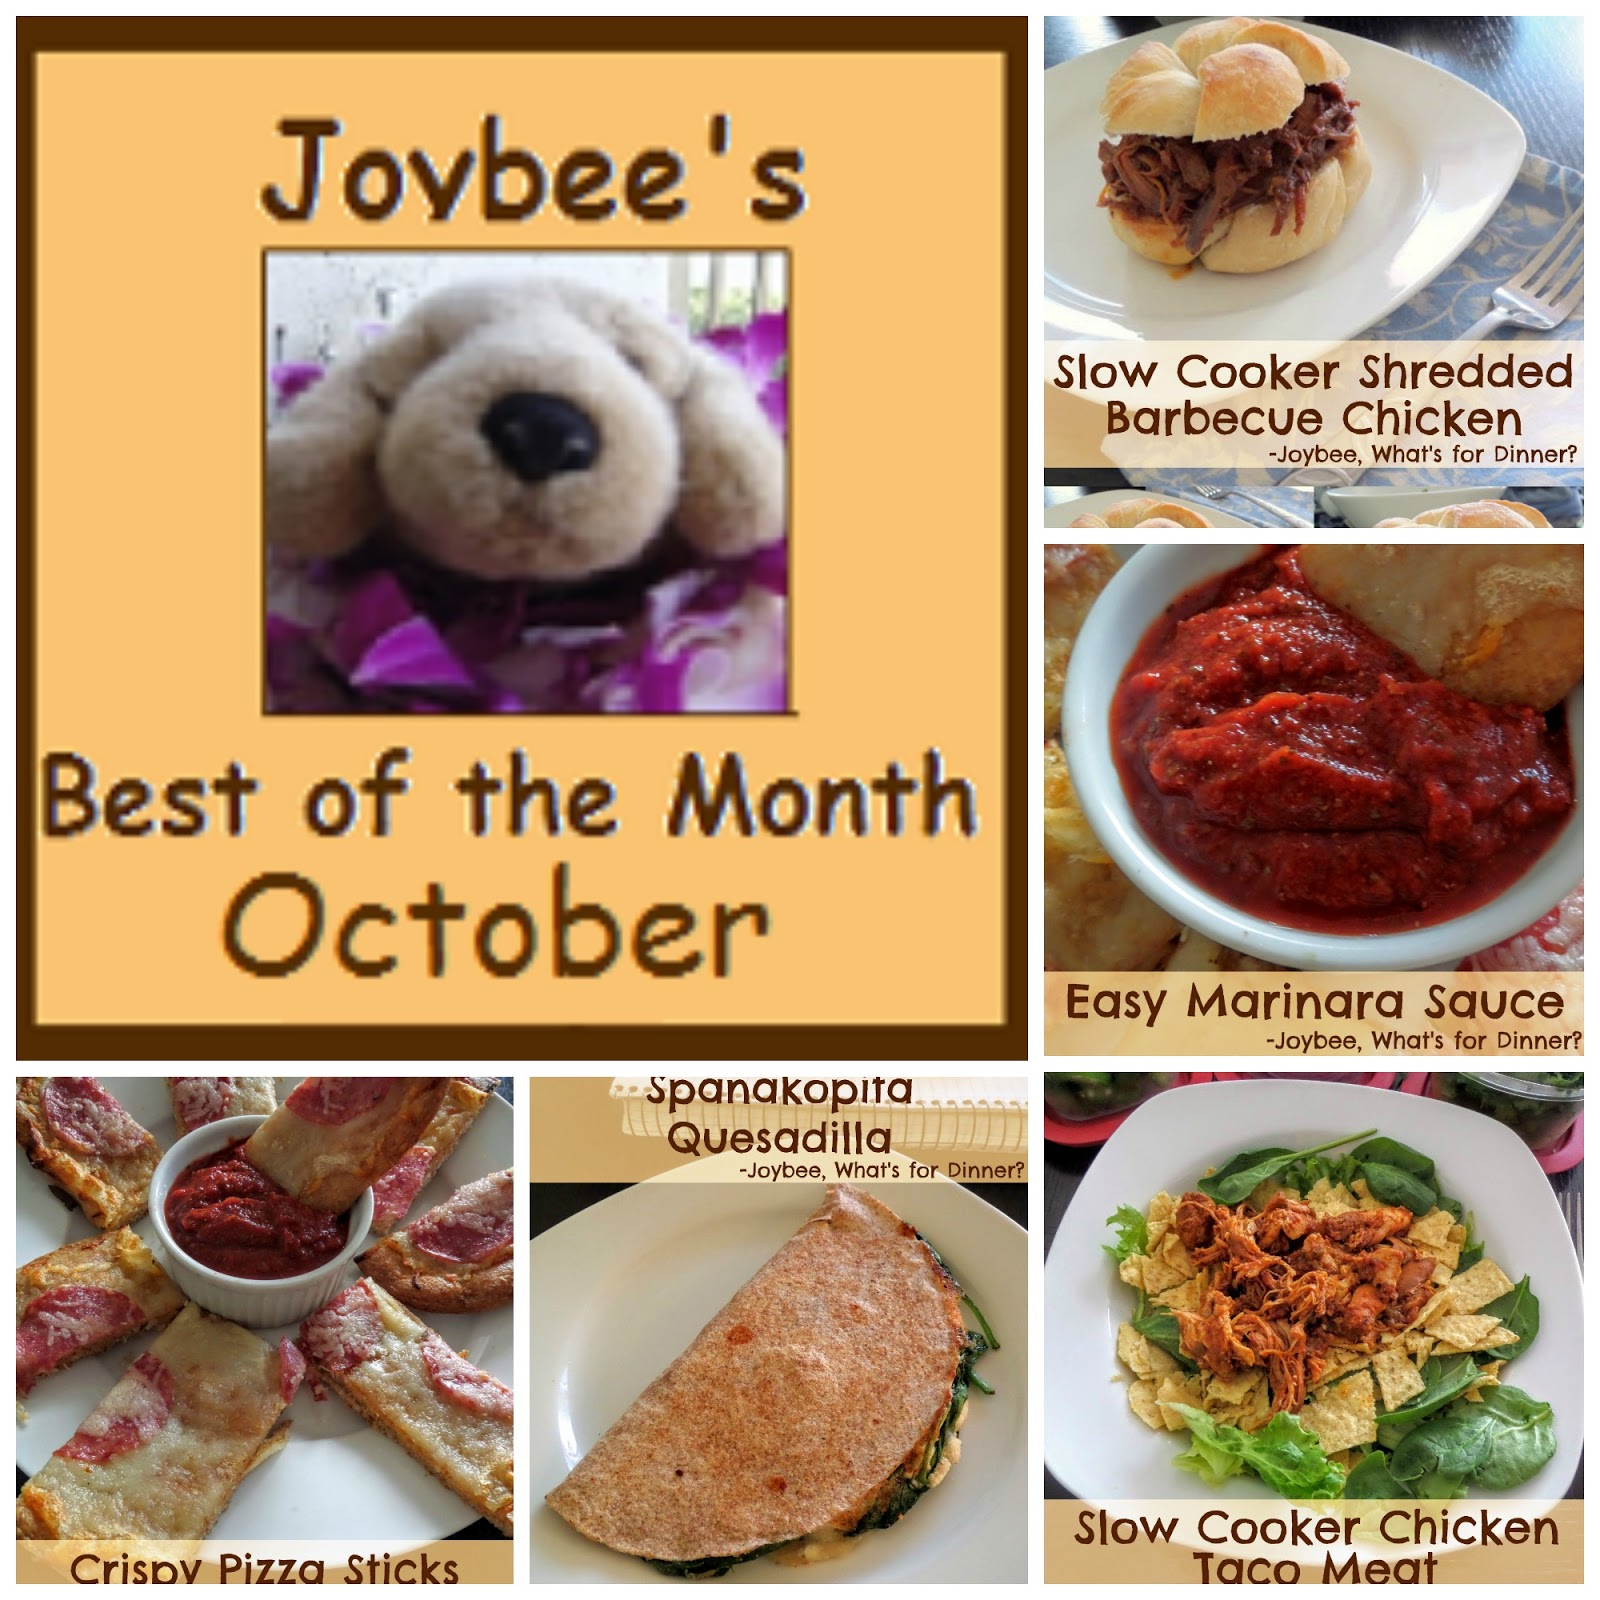 Best of the month october 2015 joybee what 39 s for dinner for October recipes